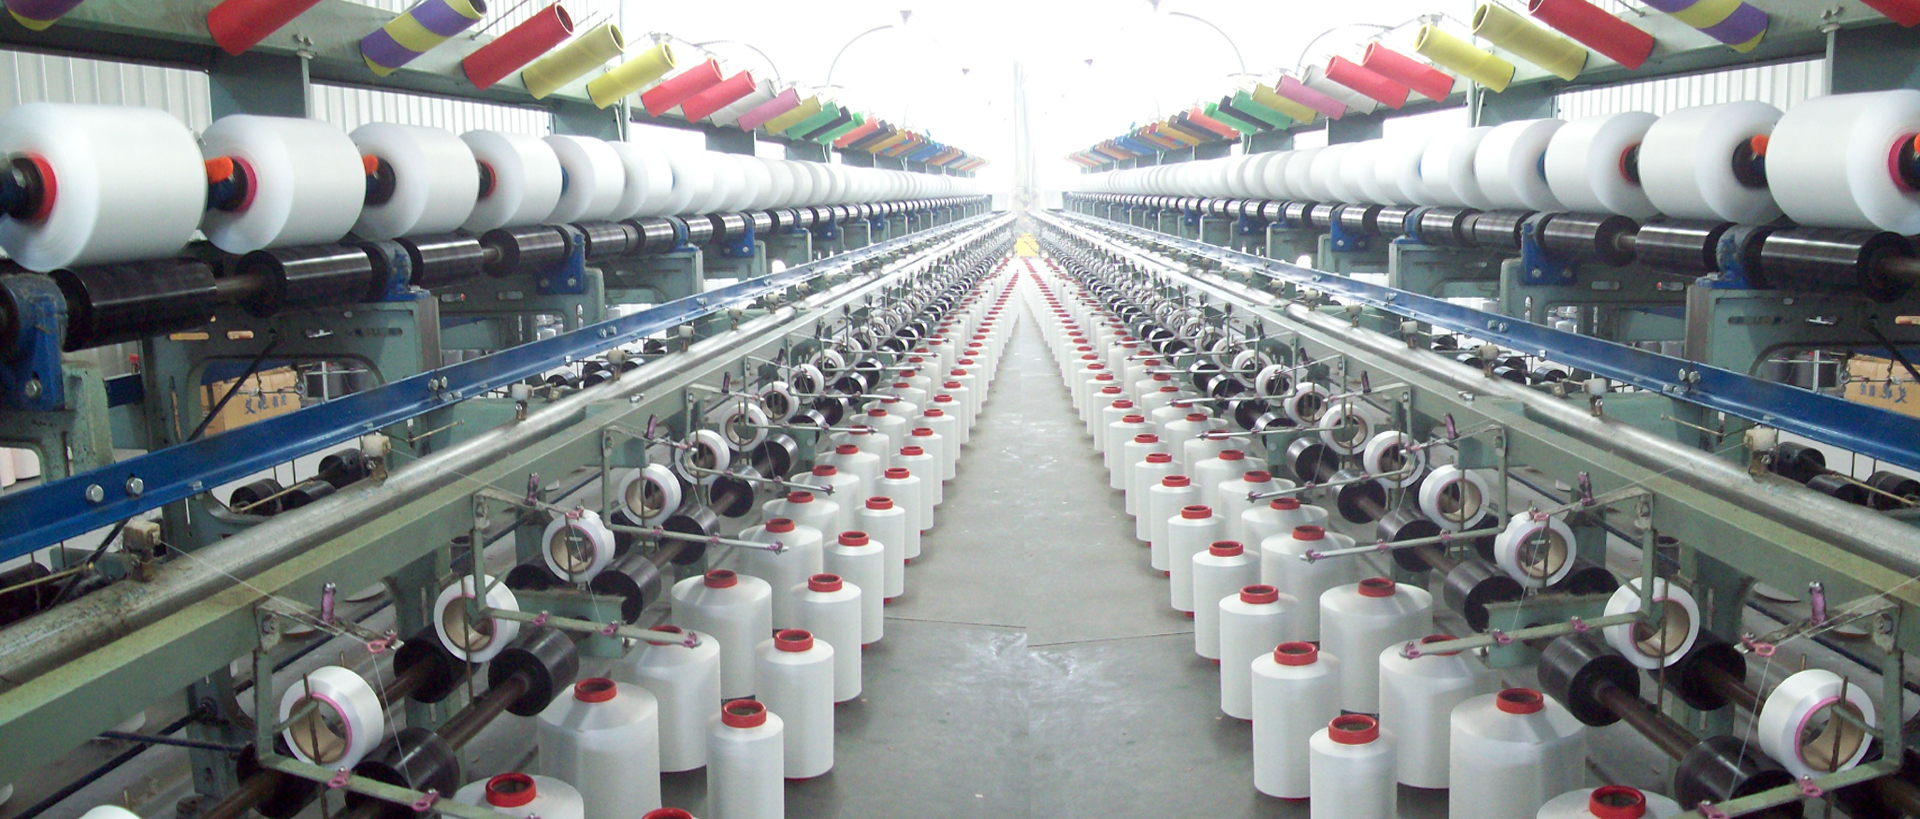 Infectious Successes-Lessons for Textile Industry and Beyond